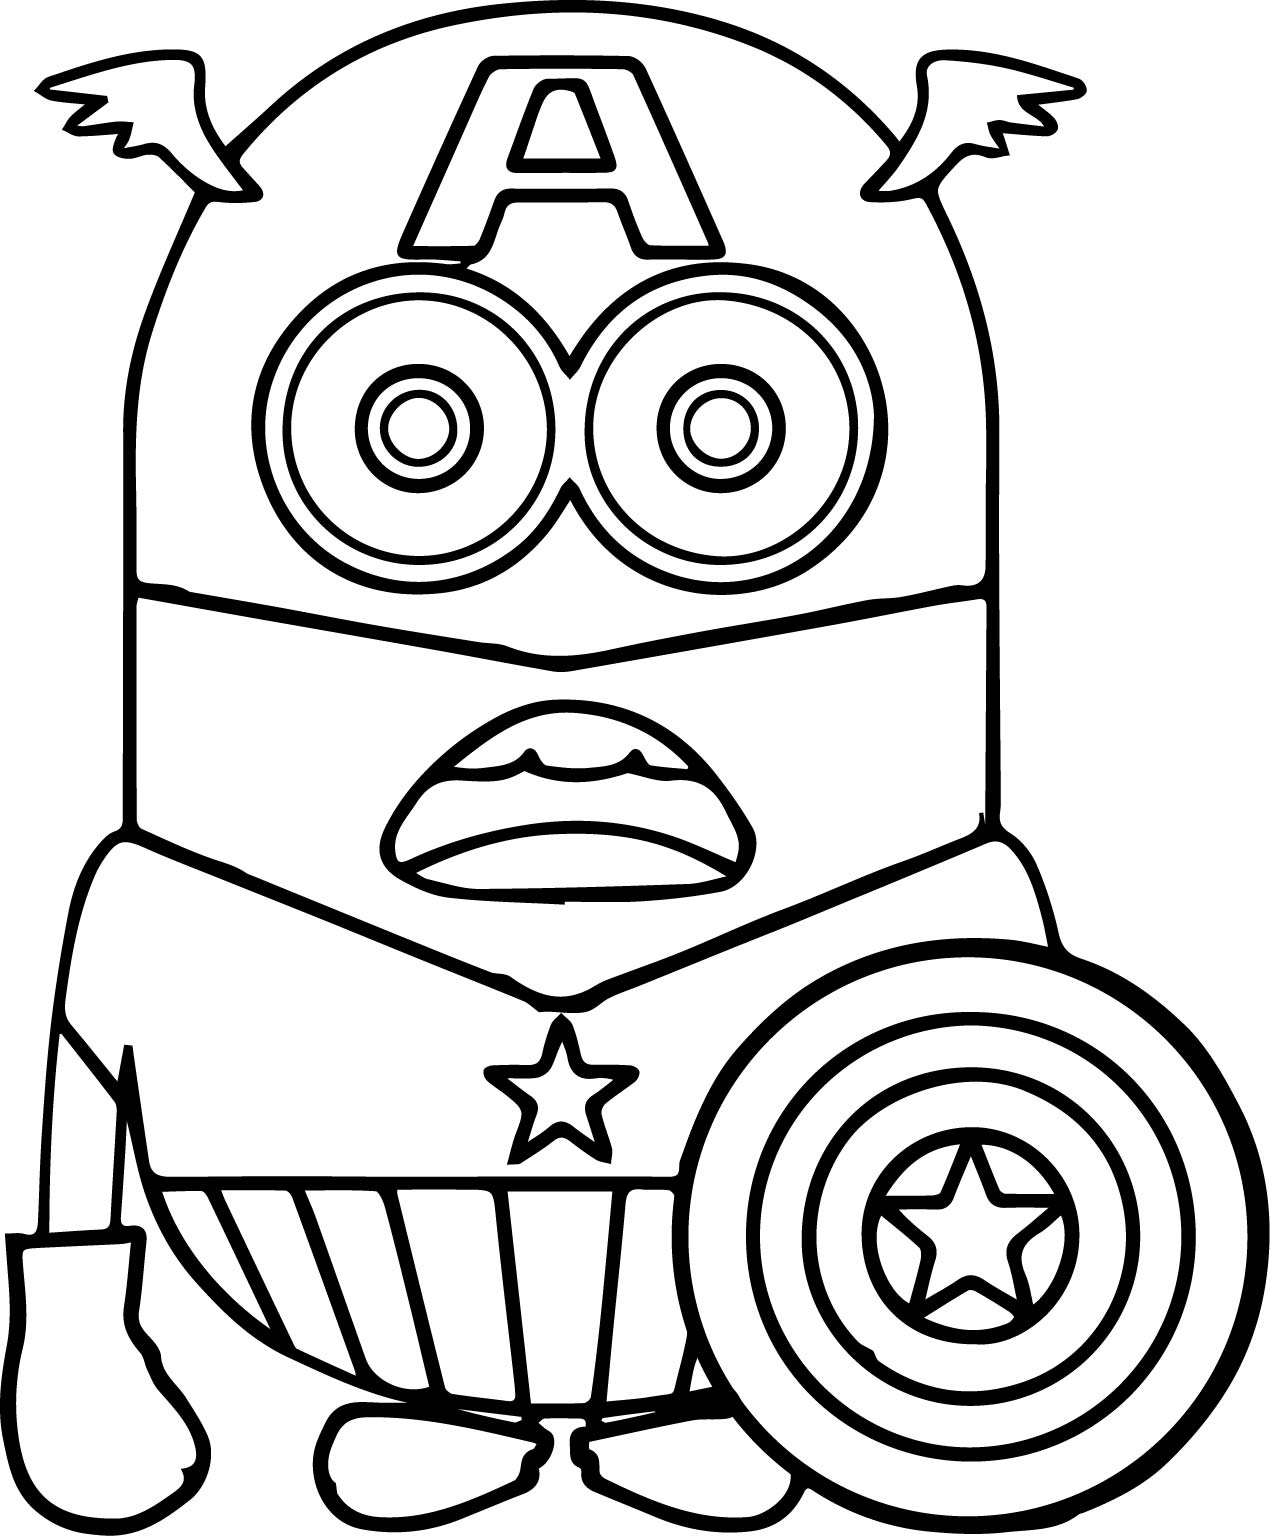 captain america coloring pages - captain america